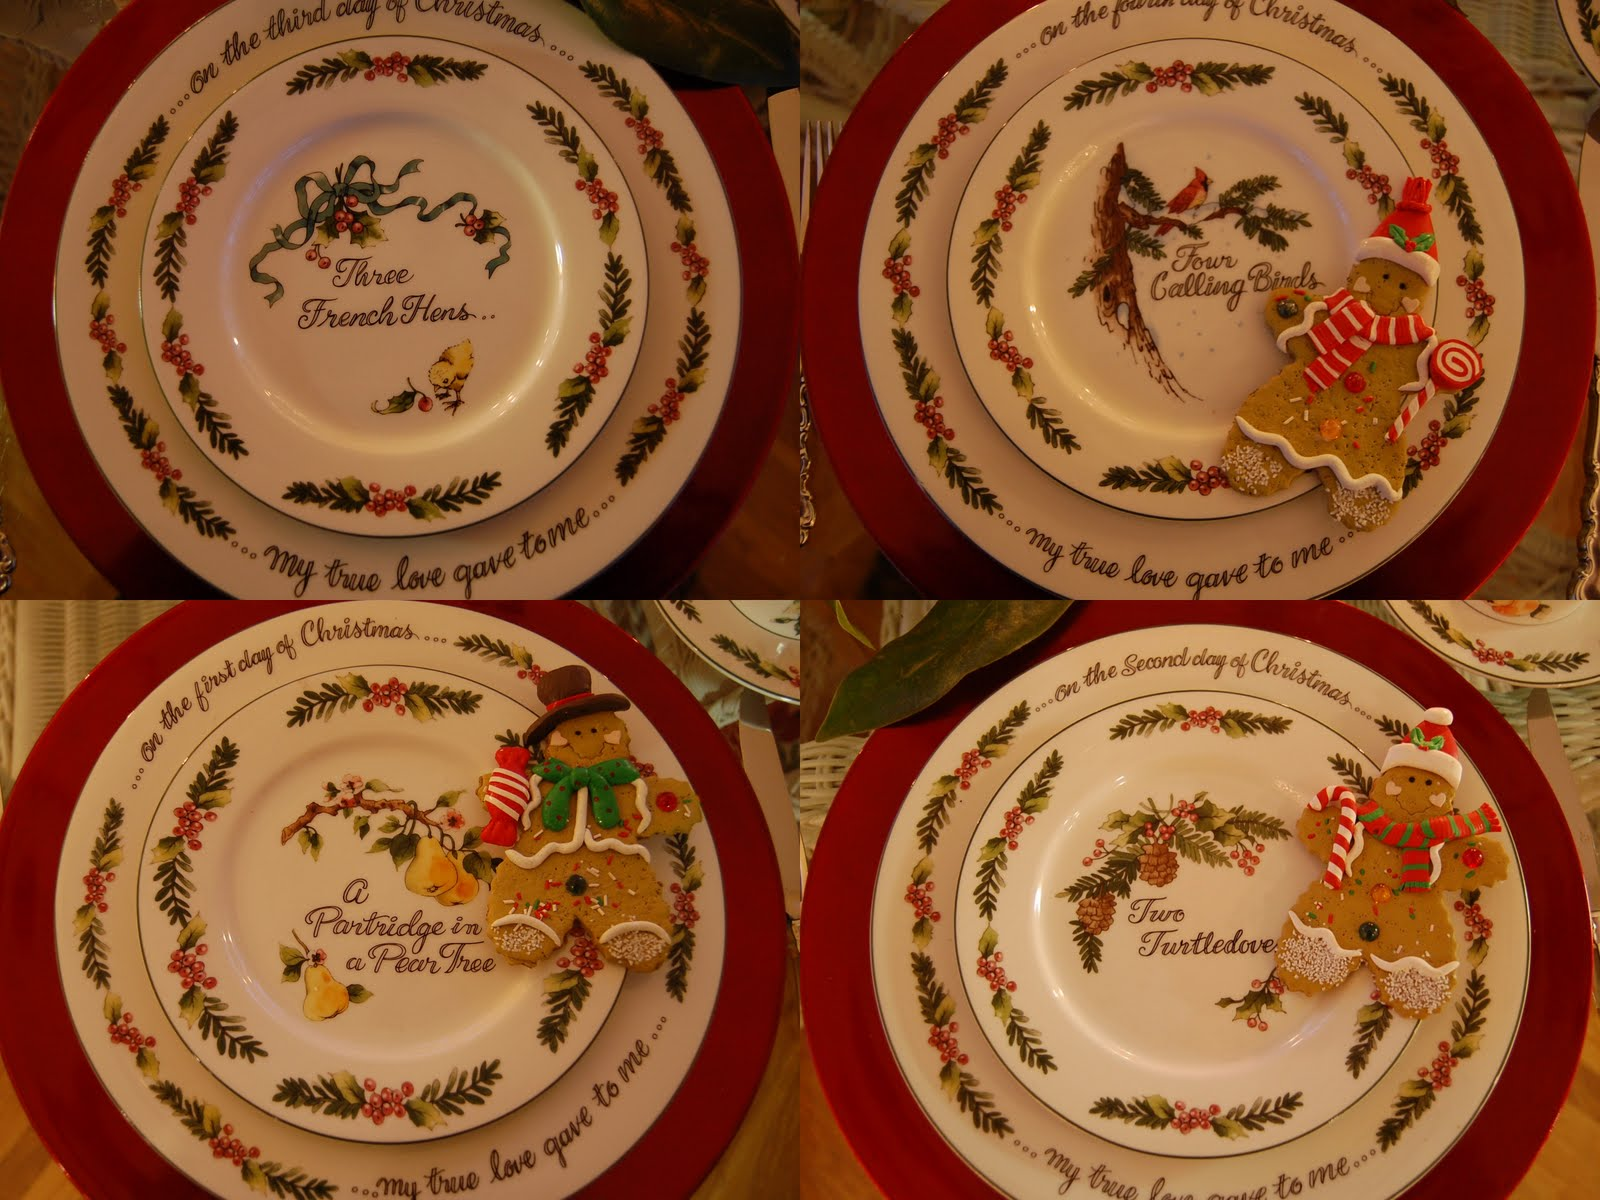 ... 4-pc place settings of Valarie Parr Hillu0027s 12 Days of Christmas for $45! Iu0027m on the lookout now for days 9-12. Here are the salad plates for days 1-4. & Christmas Tablescape Table Setting with a 12 Days of Christmas Theme